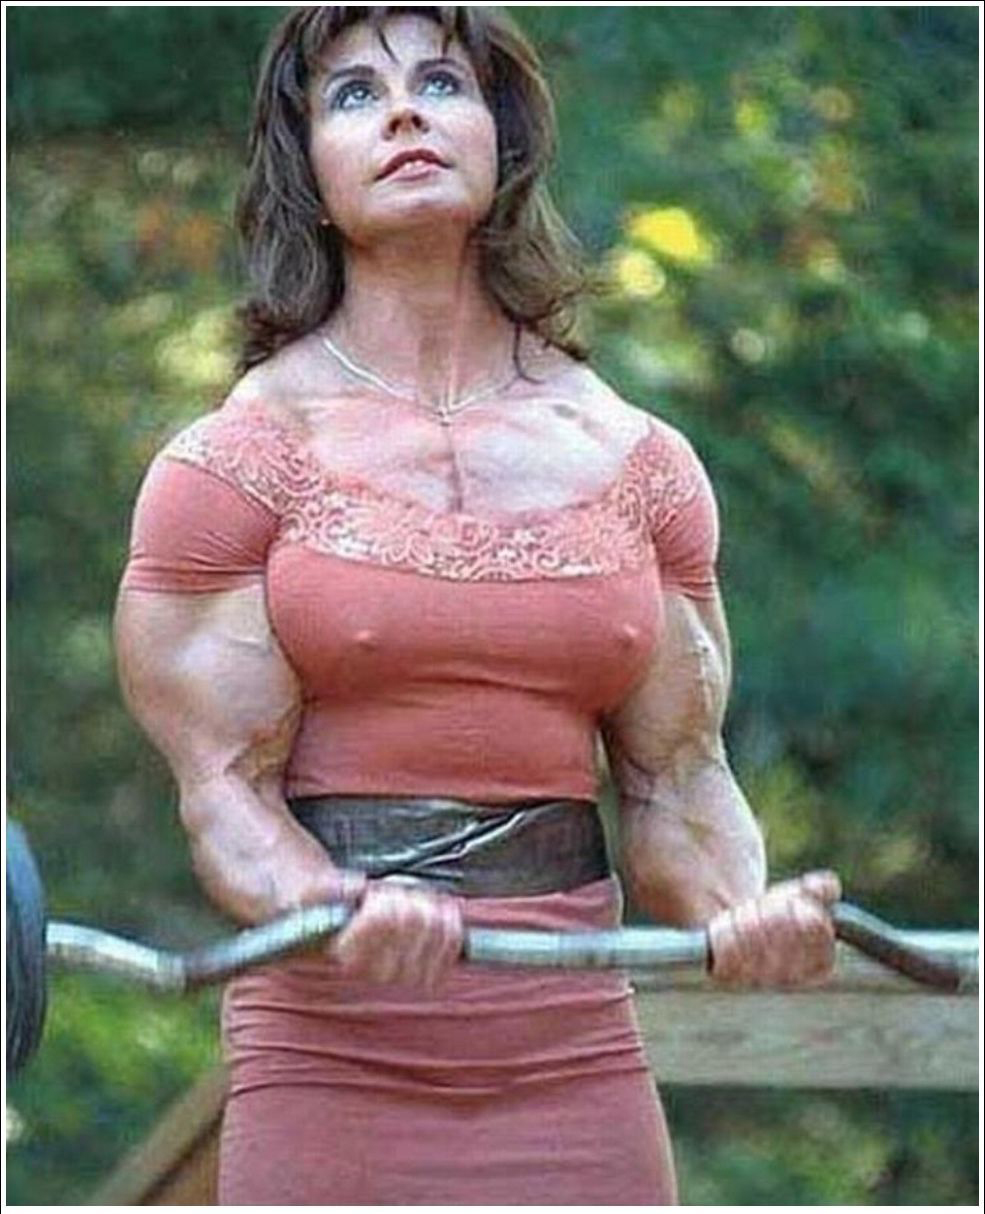 Bodybuilding women s e x pic porn boobs